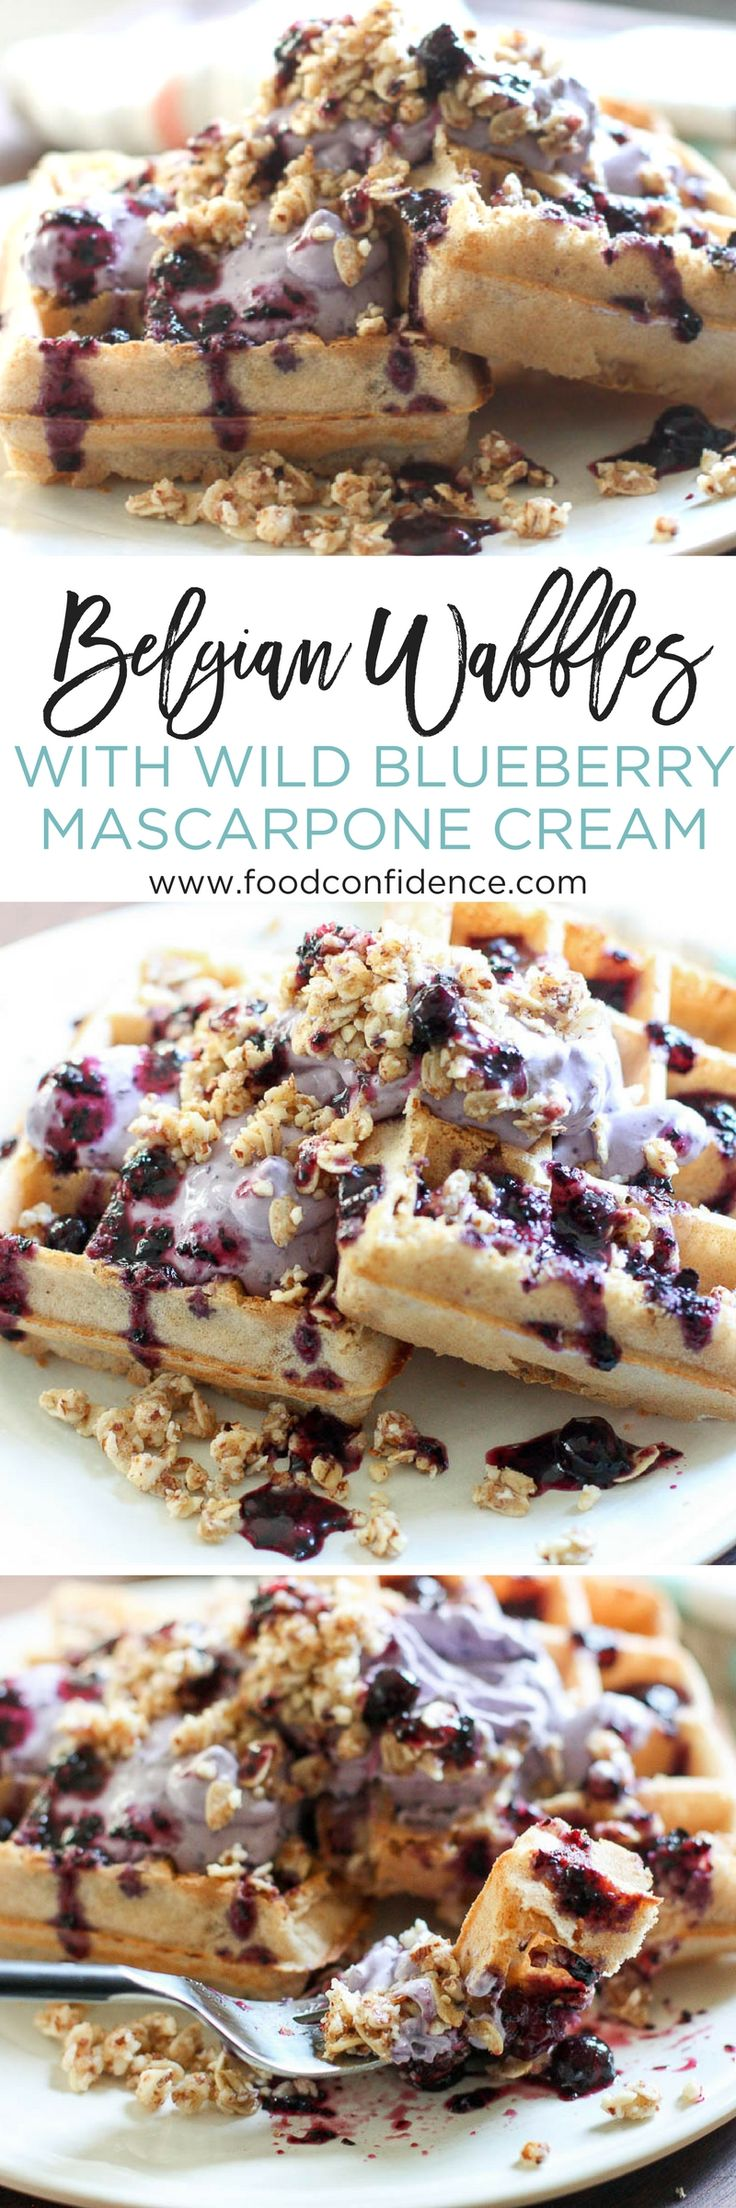 These decadent, delicious Belgian Waffles with Wild Blueberry Mascarpone Cream are perfect for impressing guests or treating yourself to a fancy breakfast. The fluffy, crispy waffles topped with rich and creamy mascarpone and crunchy no-bake granola will be your new favorite brunch recipe.  | easy waffle recipe | belgian waffle recipe | best brunch recipes |